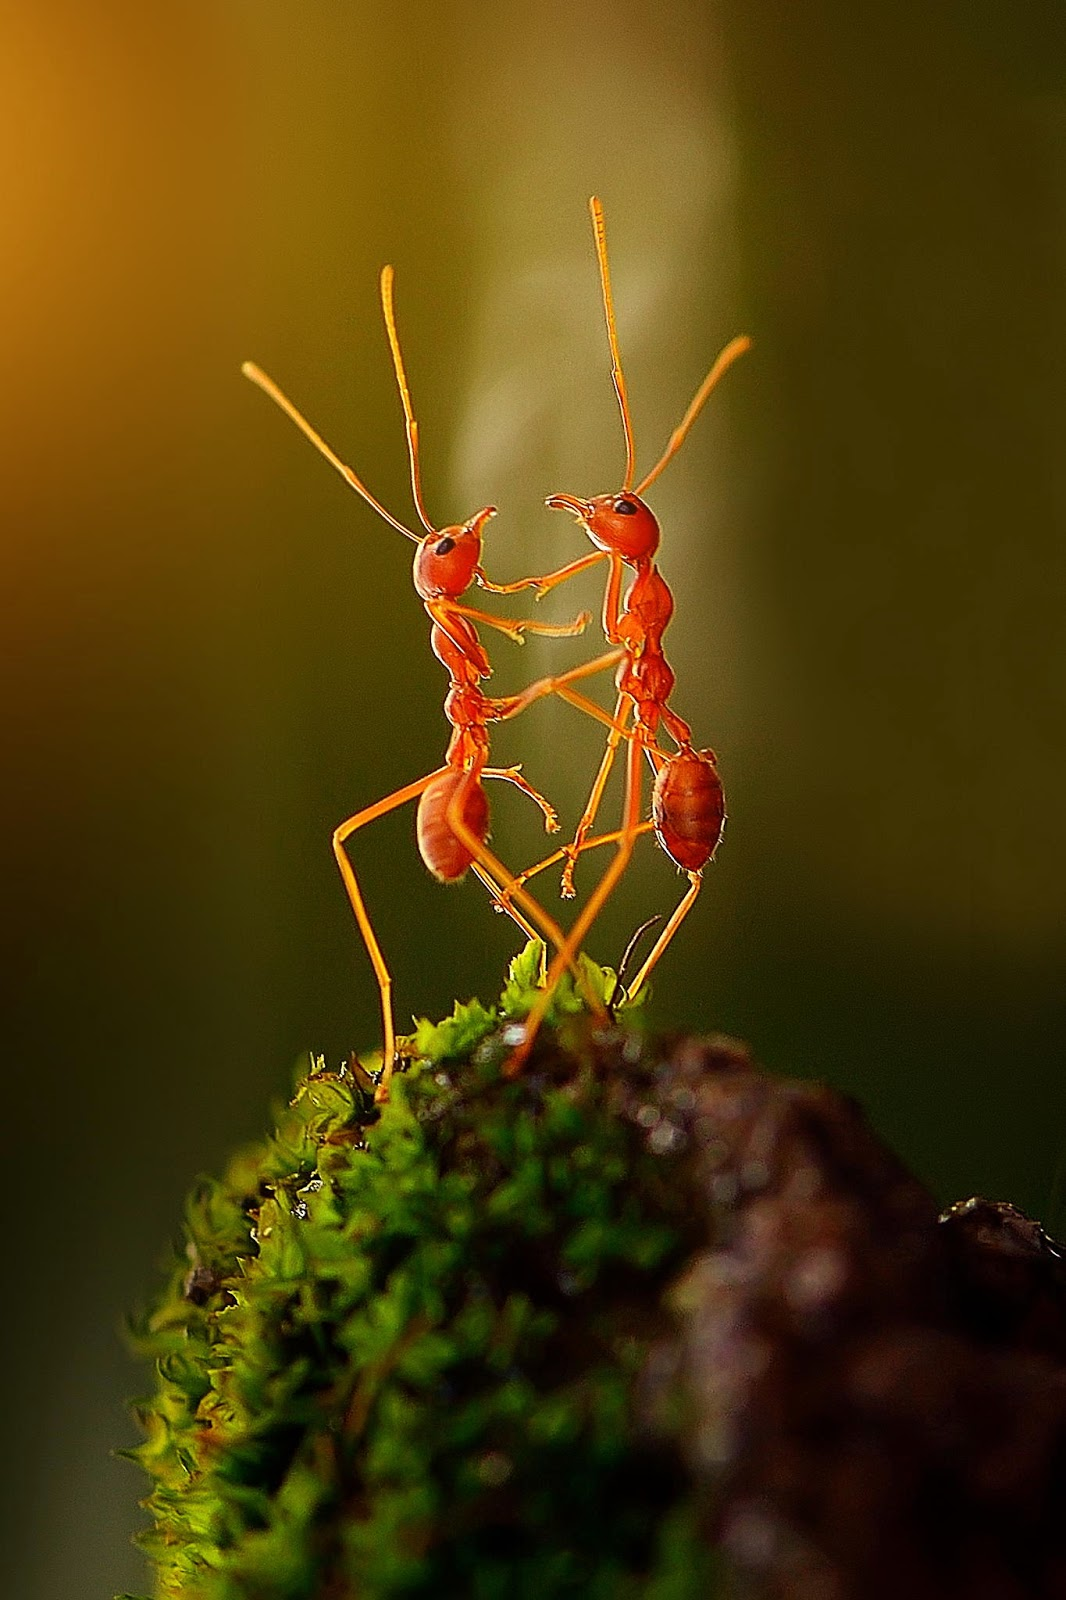 Ants Dancing Photography By Rhonny Dayusasono